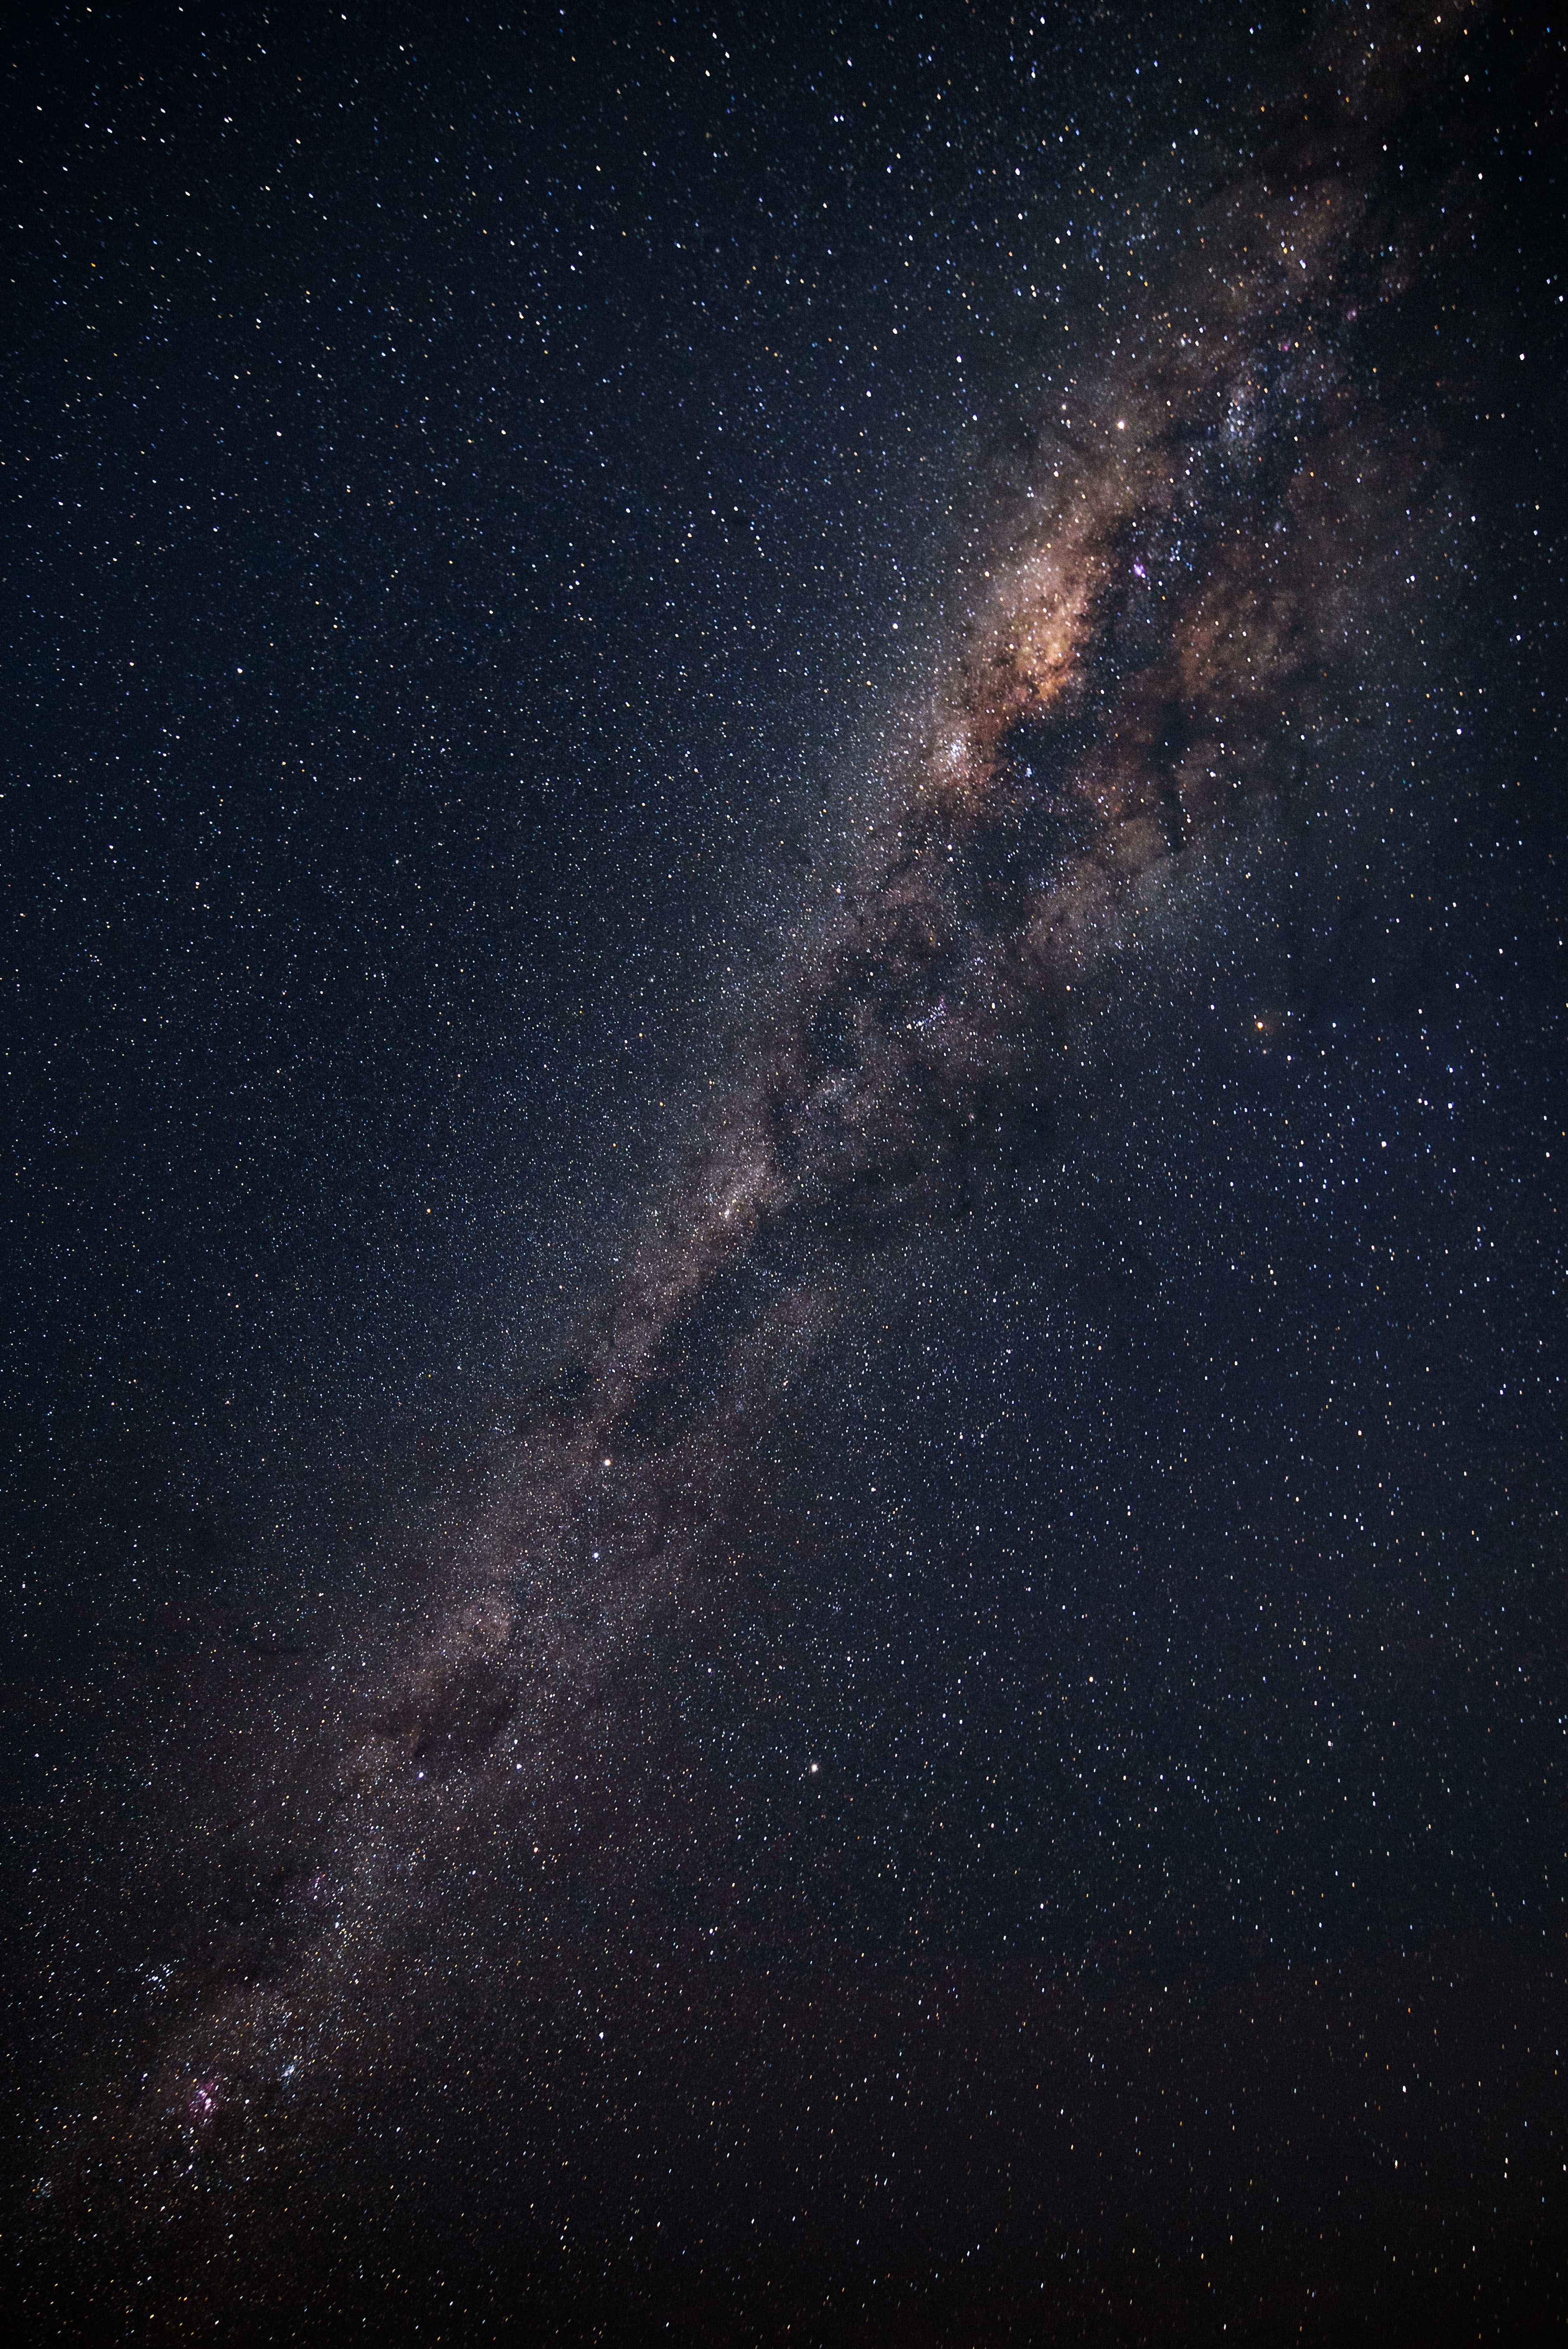 Dark Sky Background Hd Posted By Samantha Anderson